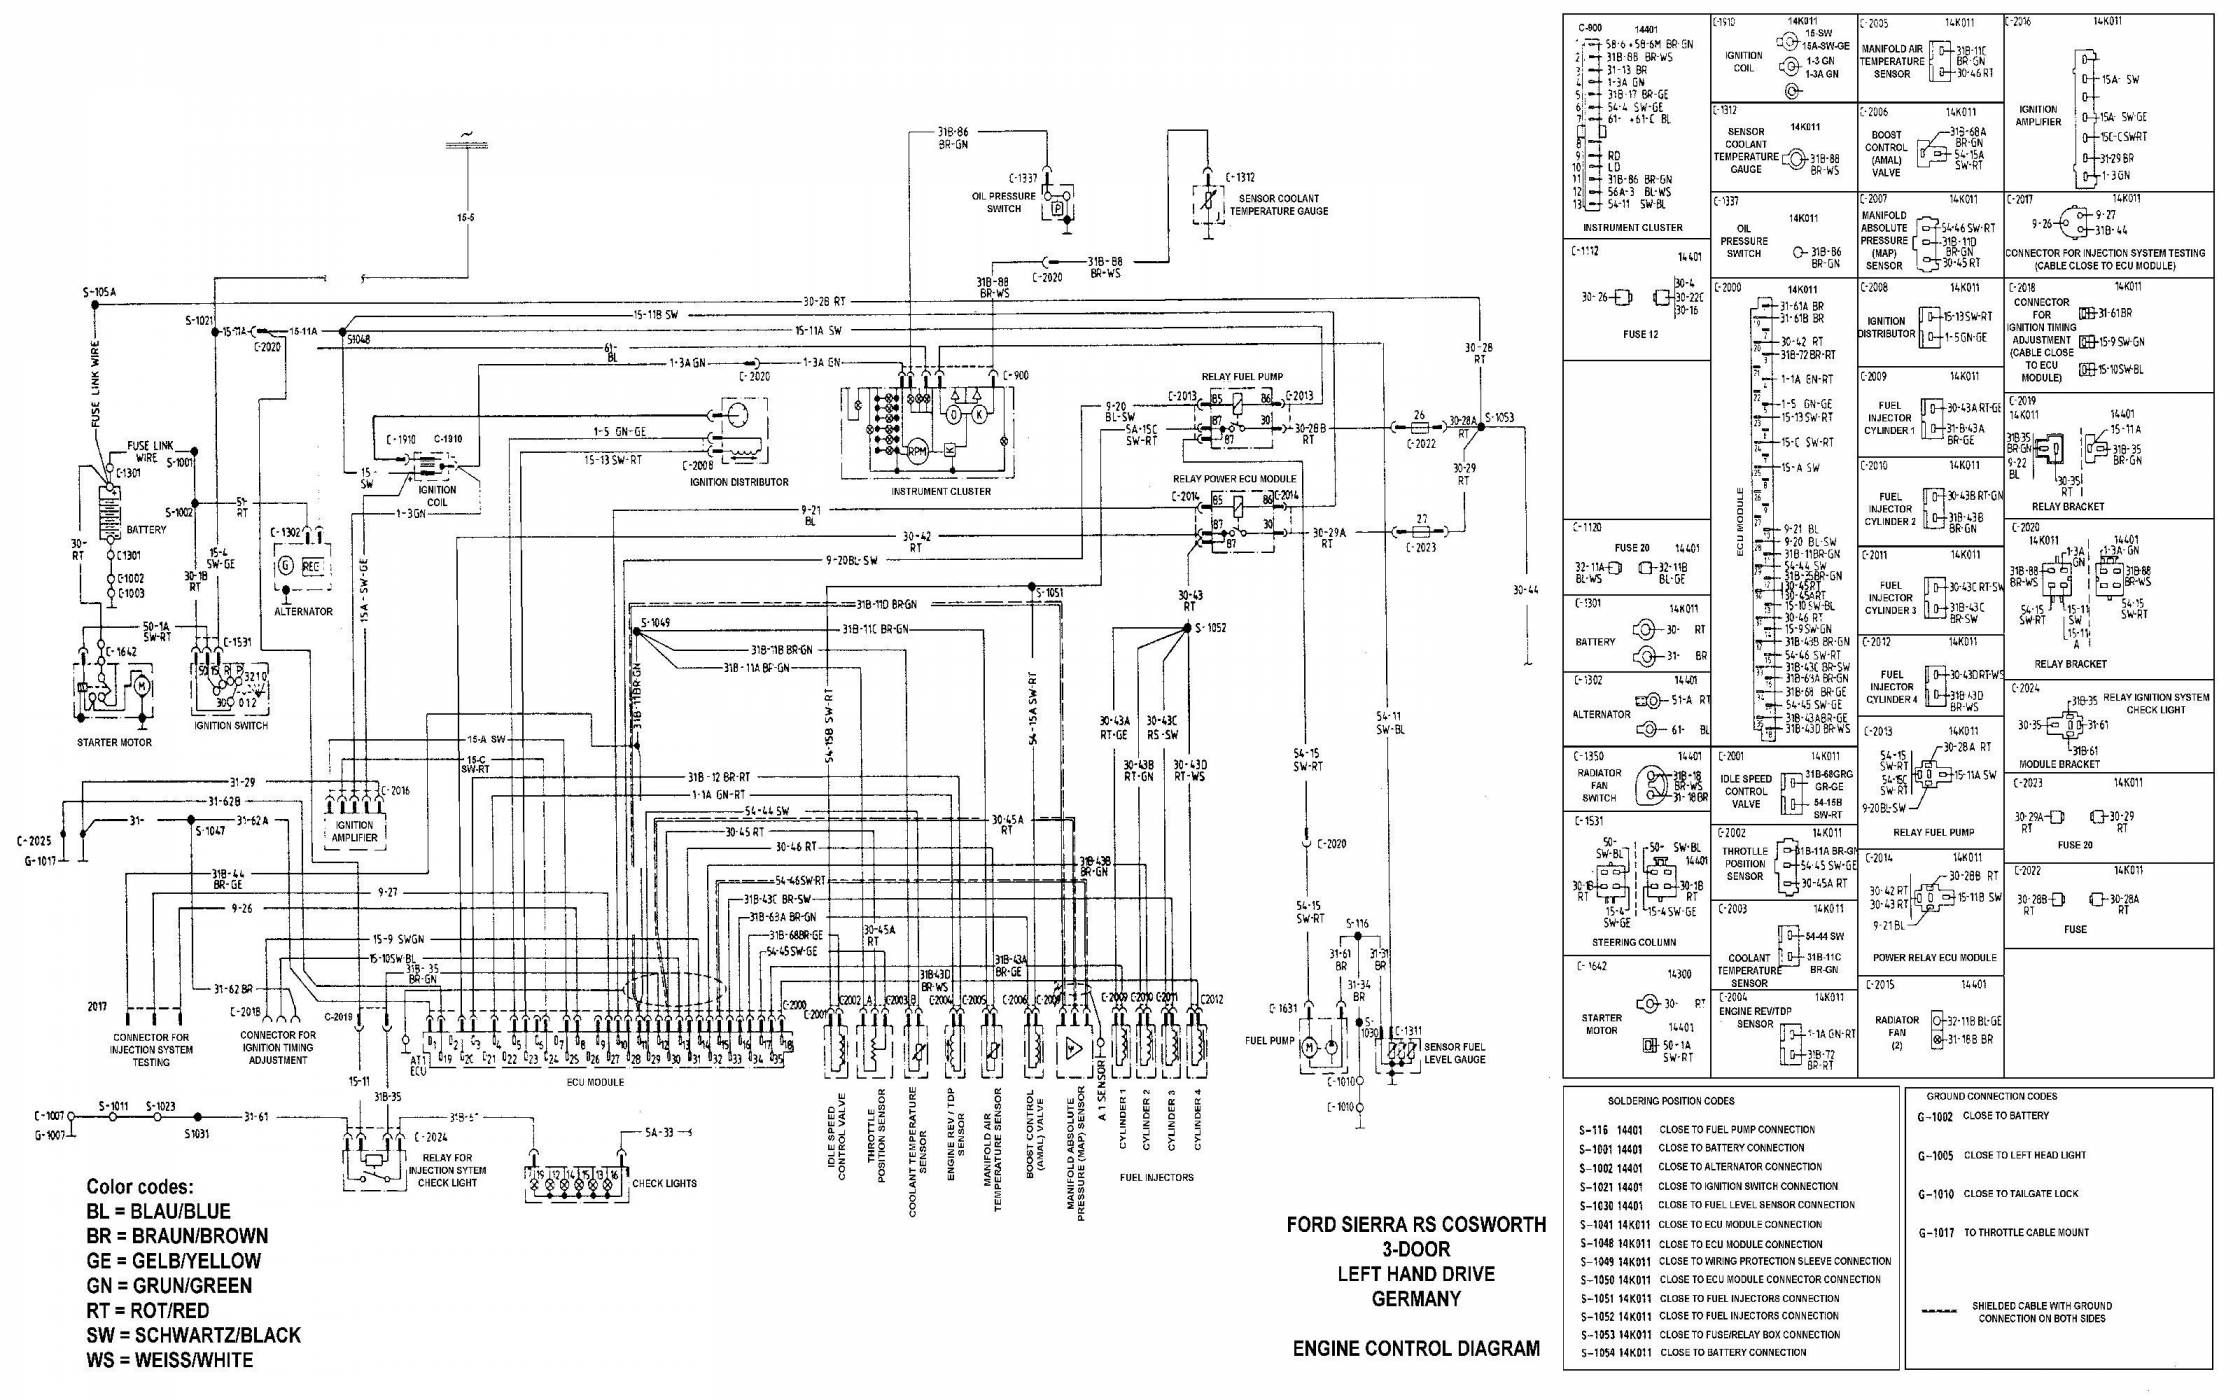 12 Fiesta St Wiring Diagram In 2020 Diagram Ford Focus Electric Furnace